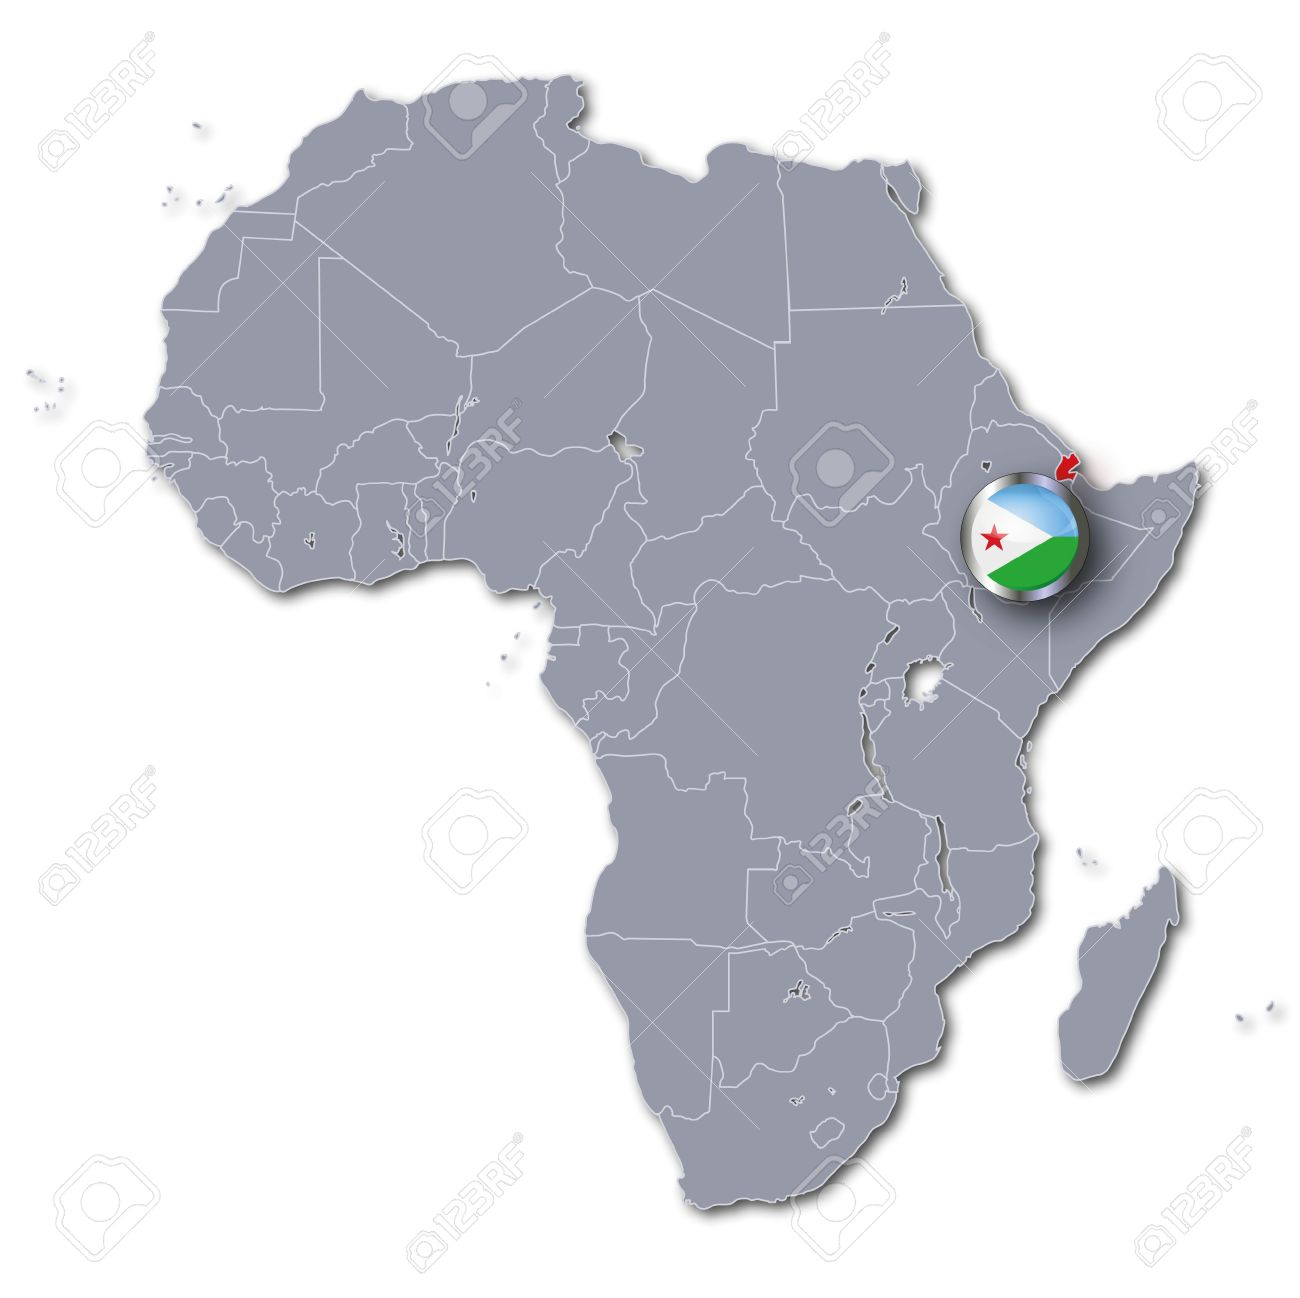 Djibouti On Africa Map.Africa Map With Djibouti Stock Photo Picture And Royalty Free Image